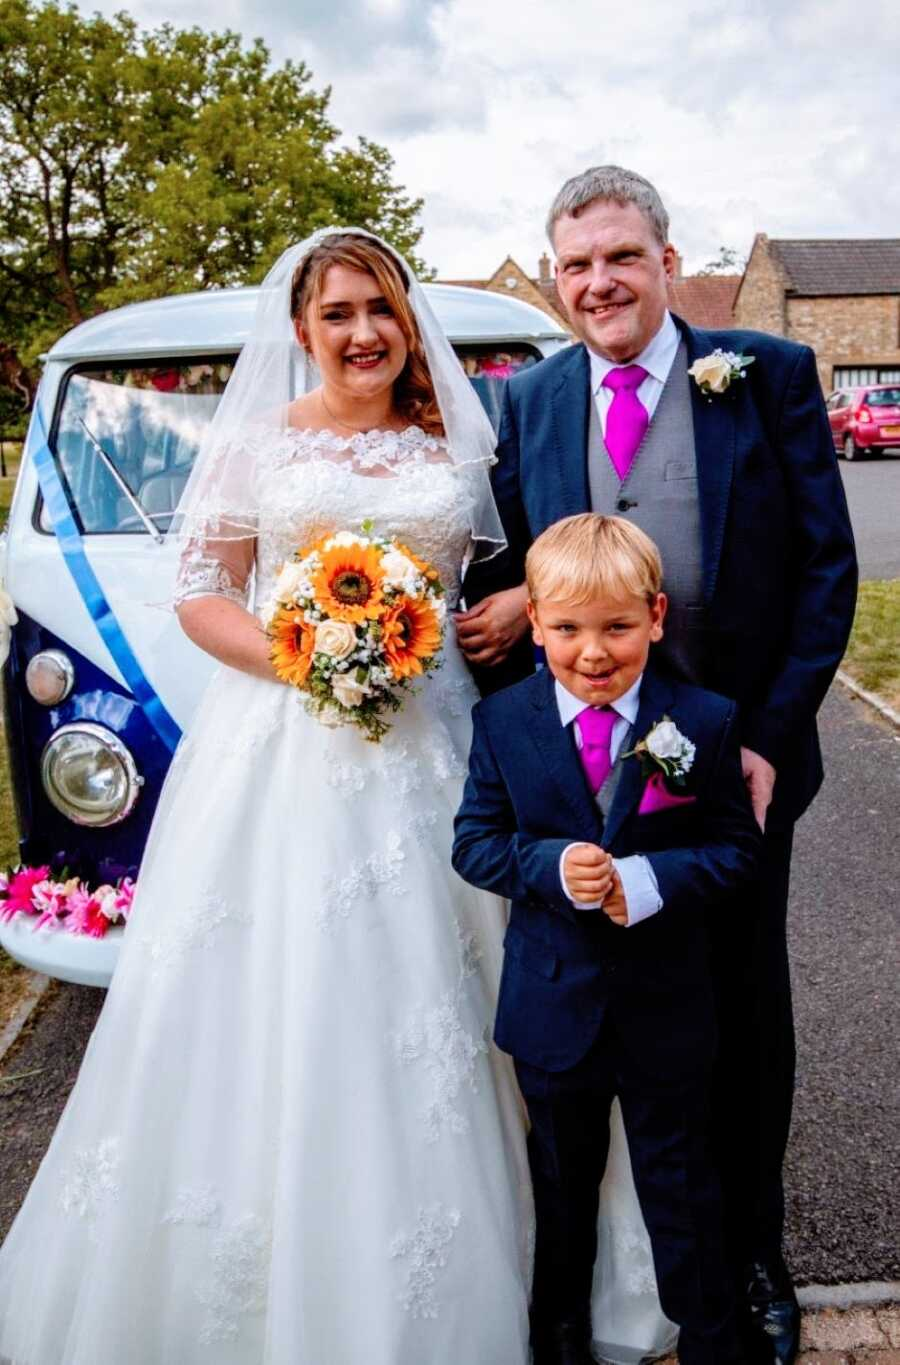 Young girl takes a photo with her dad while standing in front of a Volkswagen Bus on her wedding day